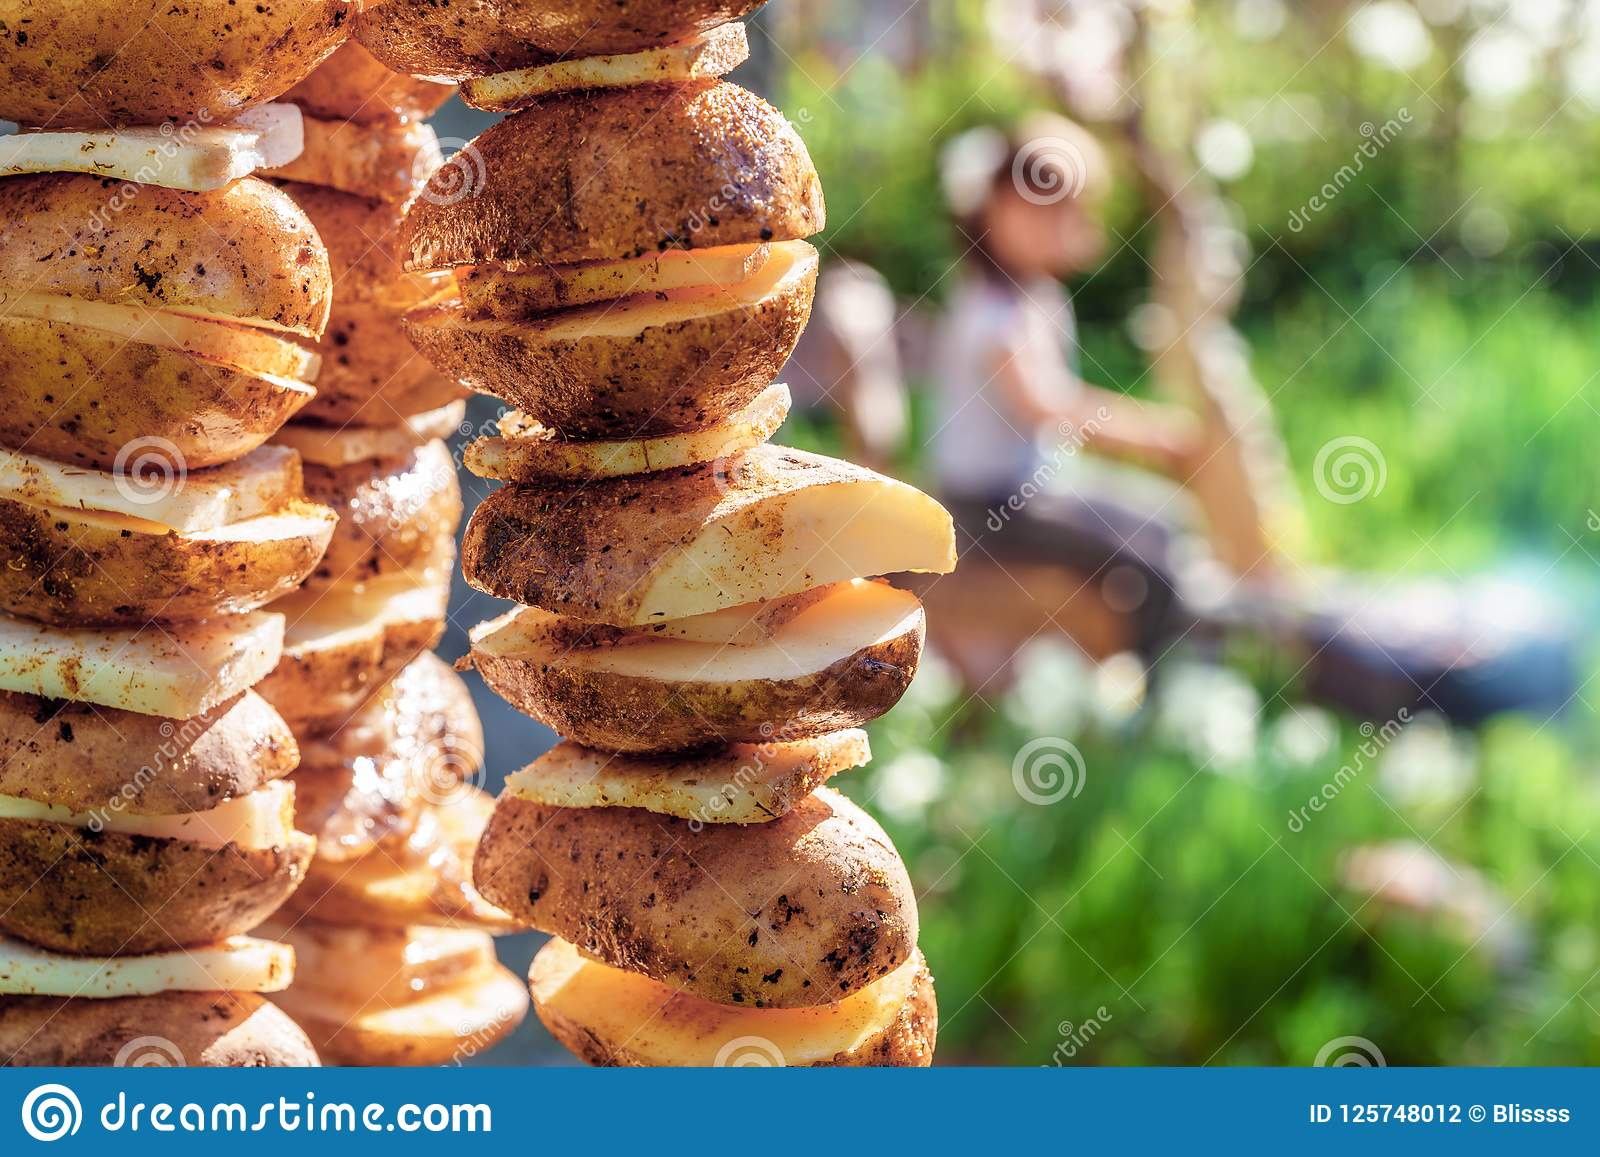 Potato with lard on skewers prepared for roasting on fire at picnic